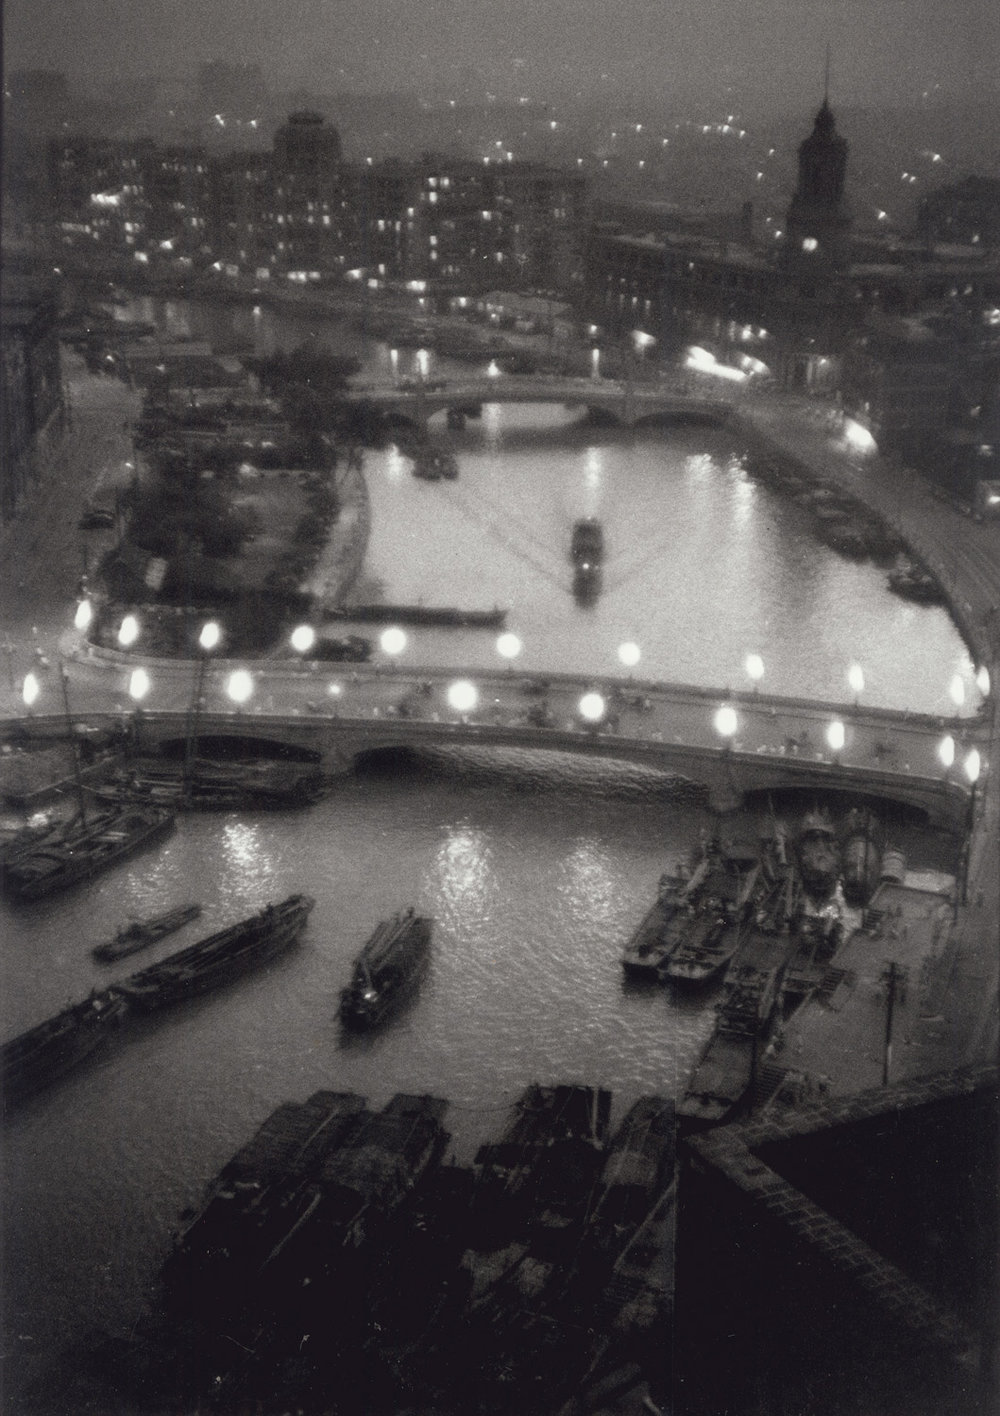 Soochow Creek and Shanghai's Bund at dusk. China, September 1956. (RDH C147-13)